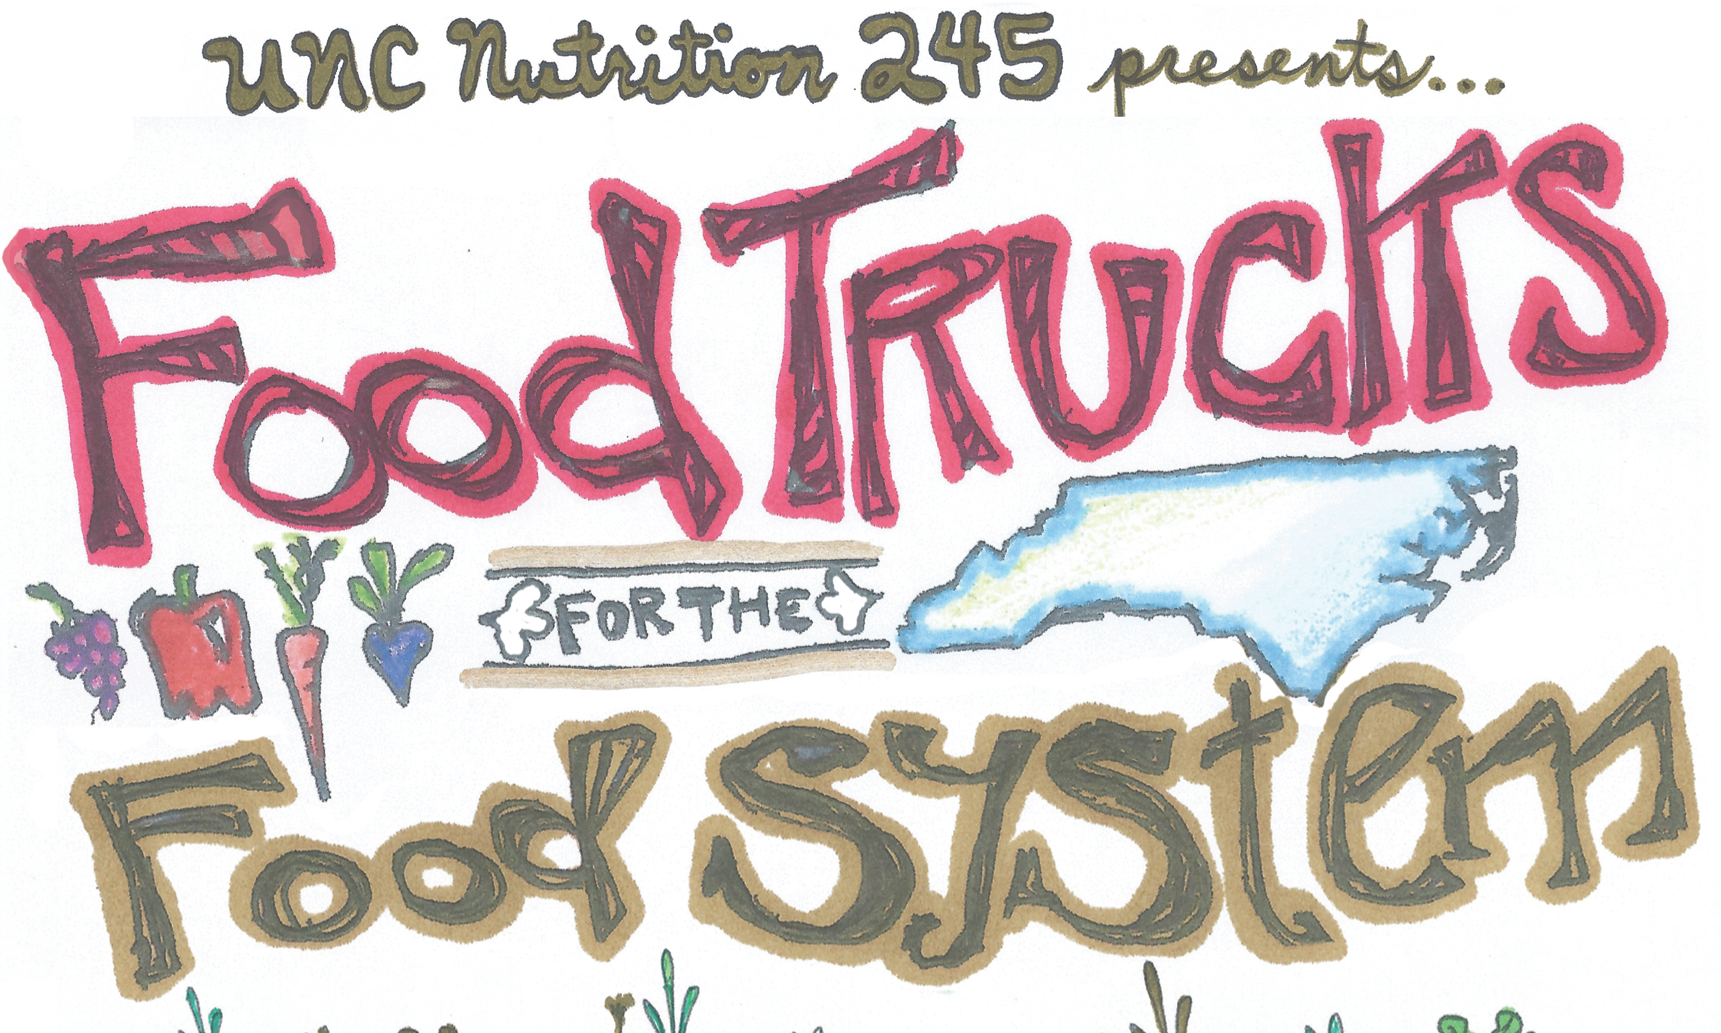 Food Trucks Helping Food Systems - Thumbnail